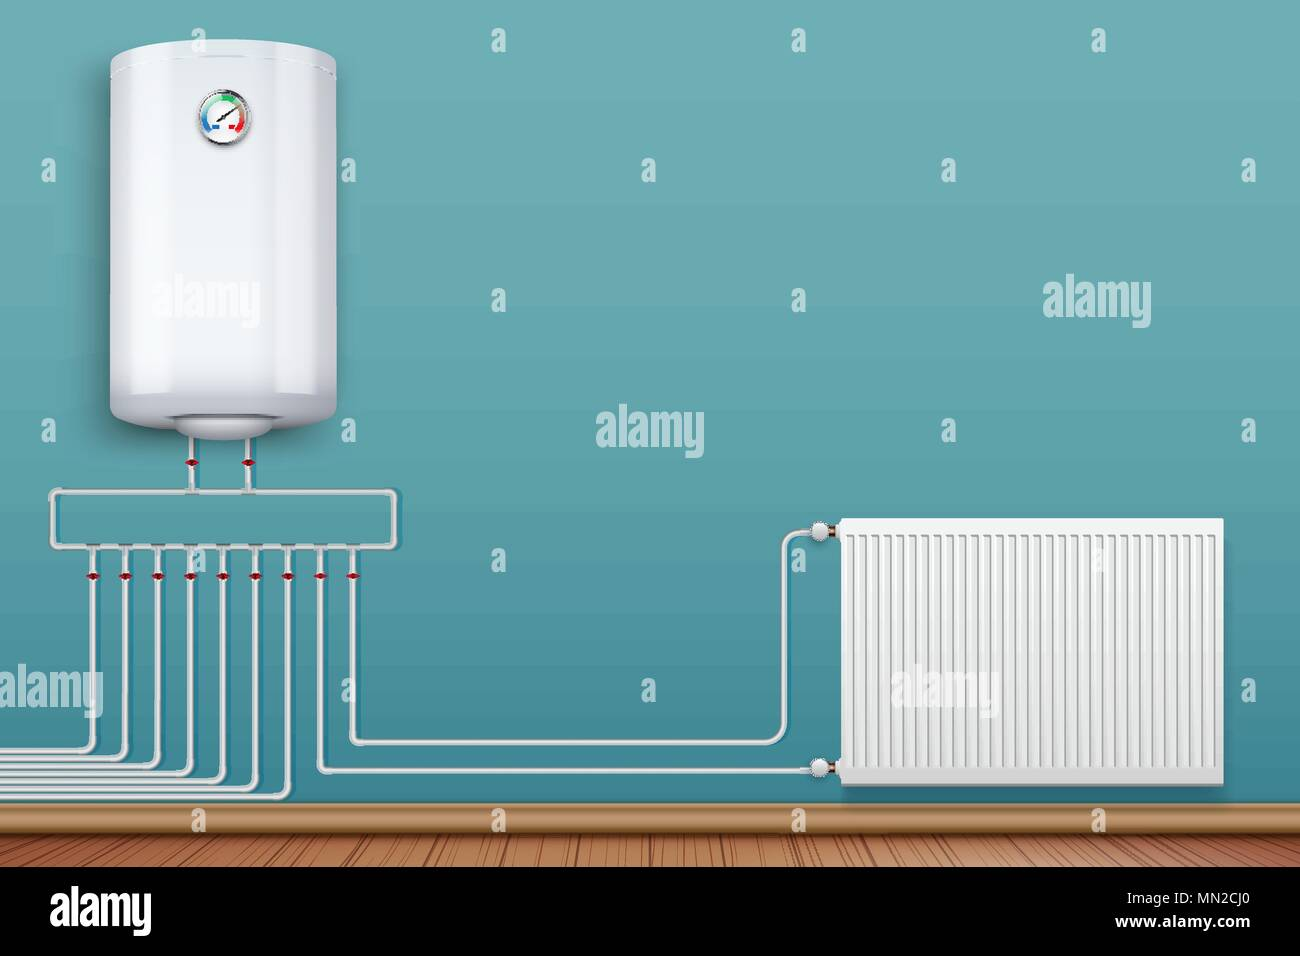 Heating radiator and boiler in room - Stock Vector